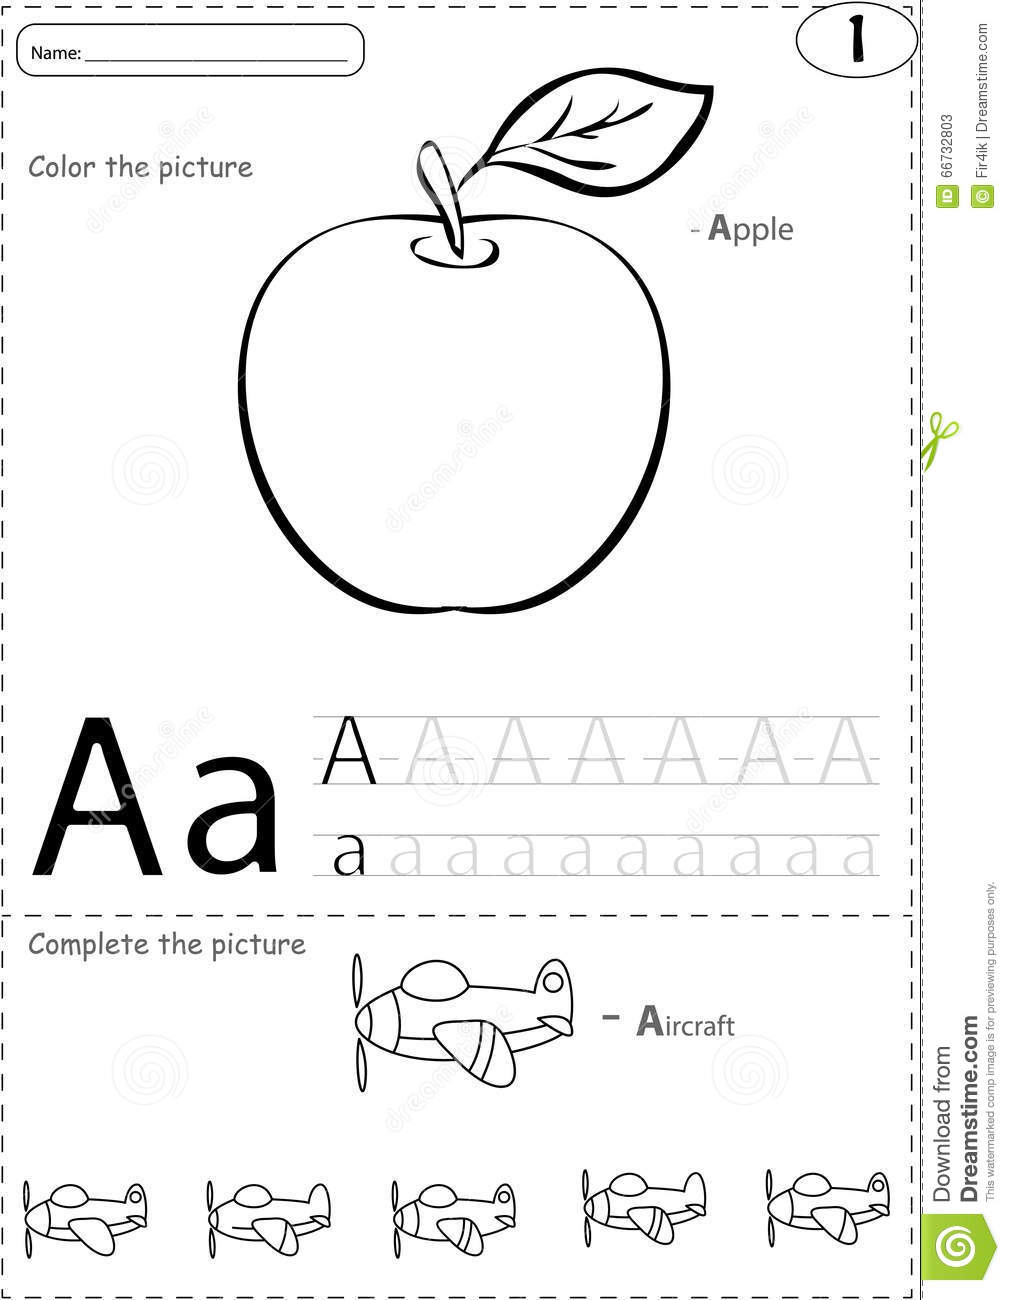 Cartoon Apple And Aircraft. Alphabet Tracing Worksheet: Writing ...